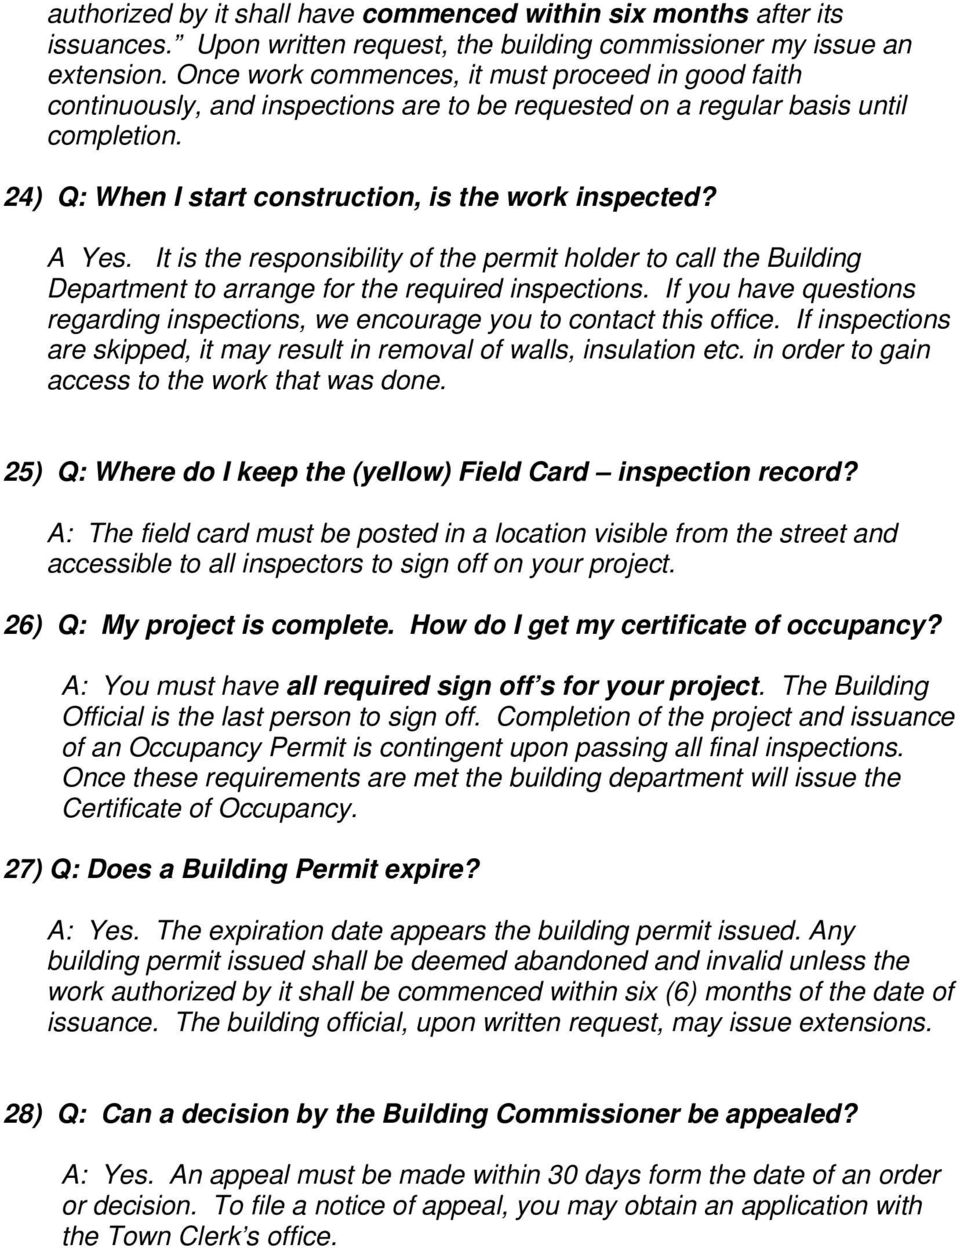 A Yes. It is the responsibility of the permit holder to call the Building Department to arrange for the required inspections.